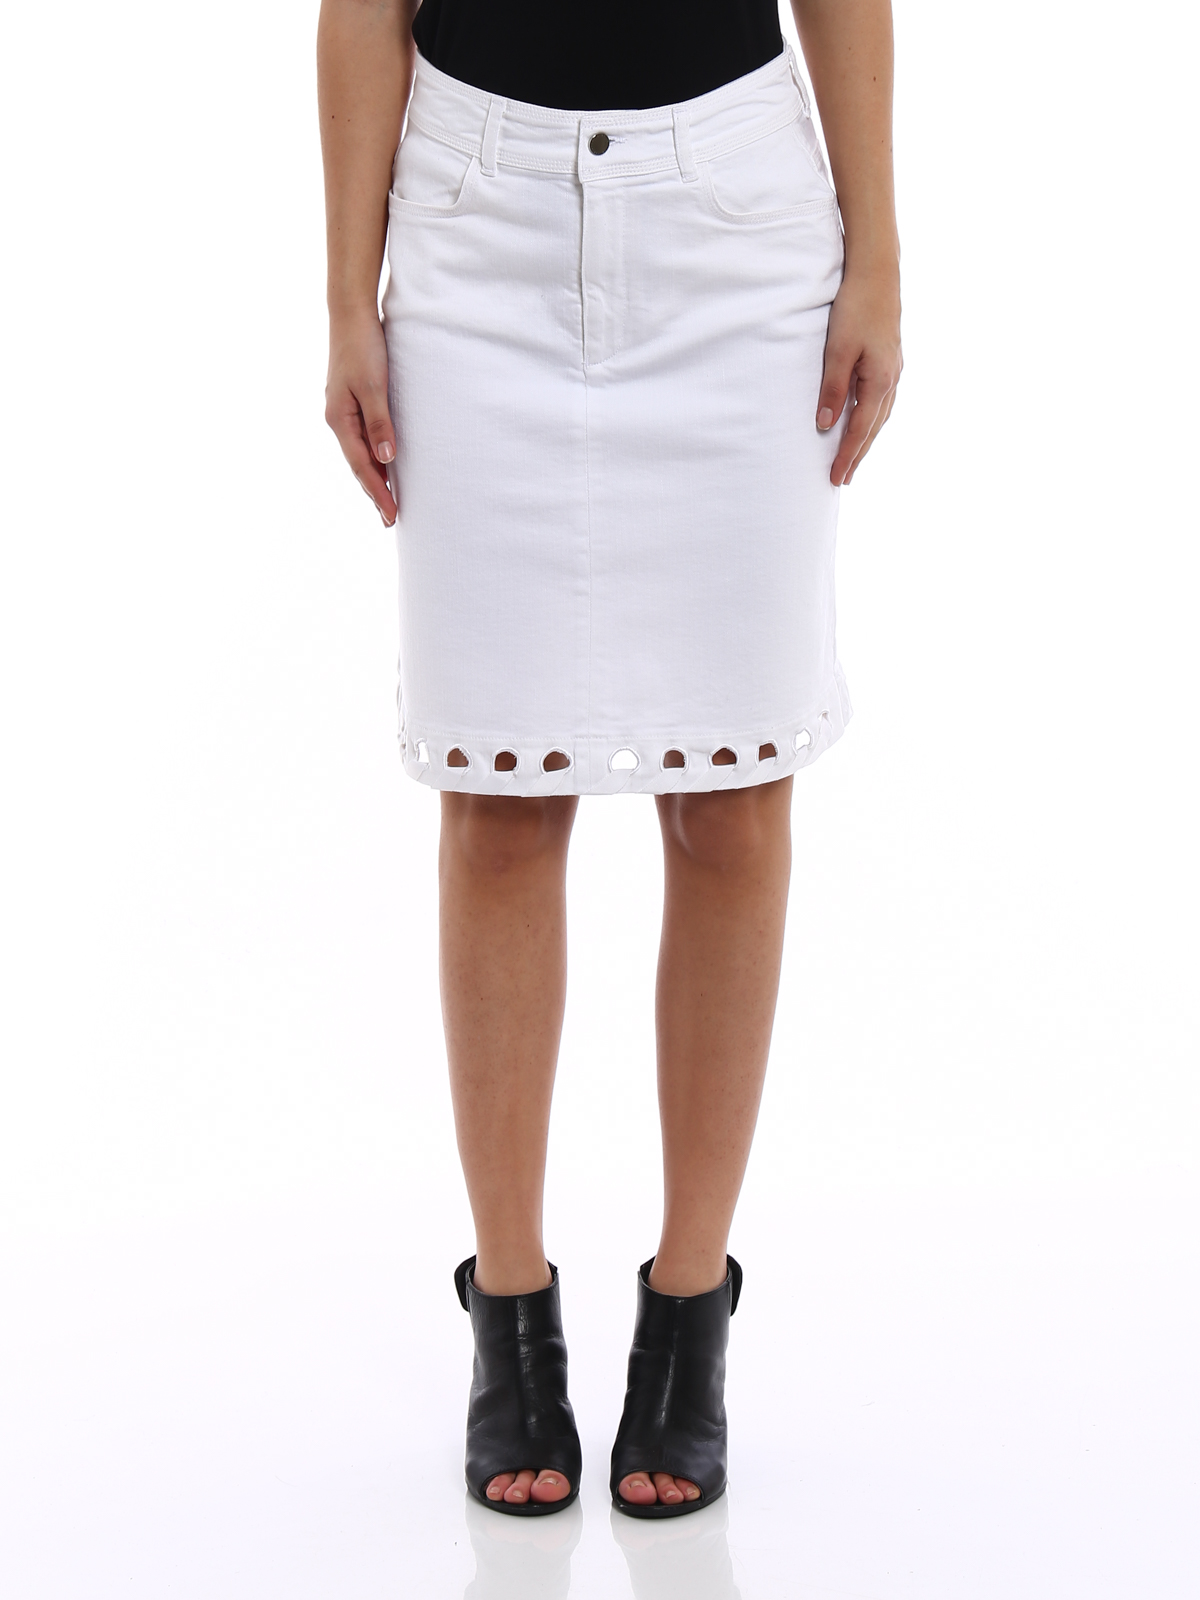 SKIRTS - Knee length skirts Victoria Beckham Free Shipping Outlet Store Oyj250PgQ